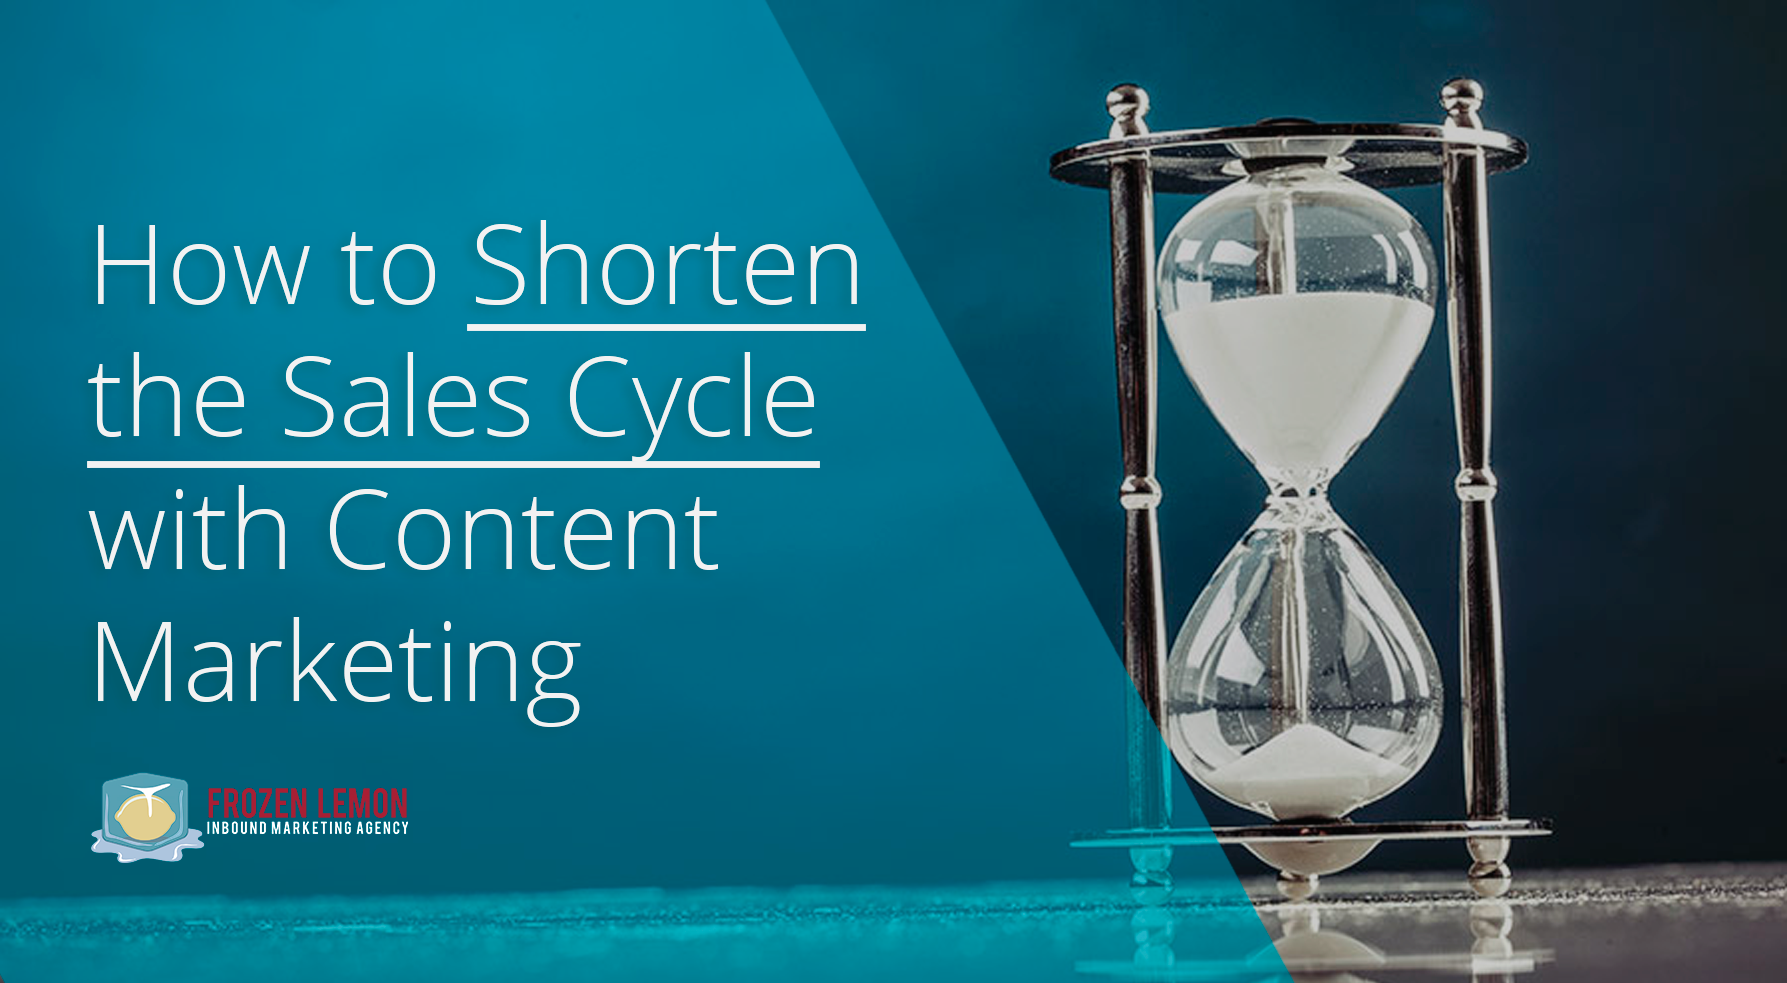 How-to-Shorten-the-Sales-Cycle-with-Content-Marketing---Blog-Image.png